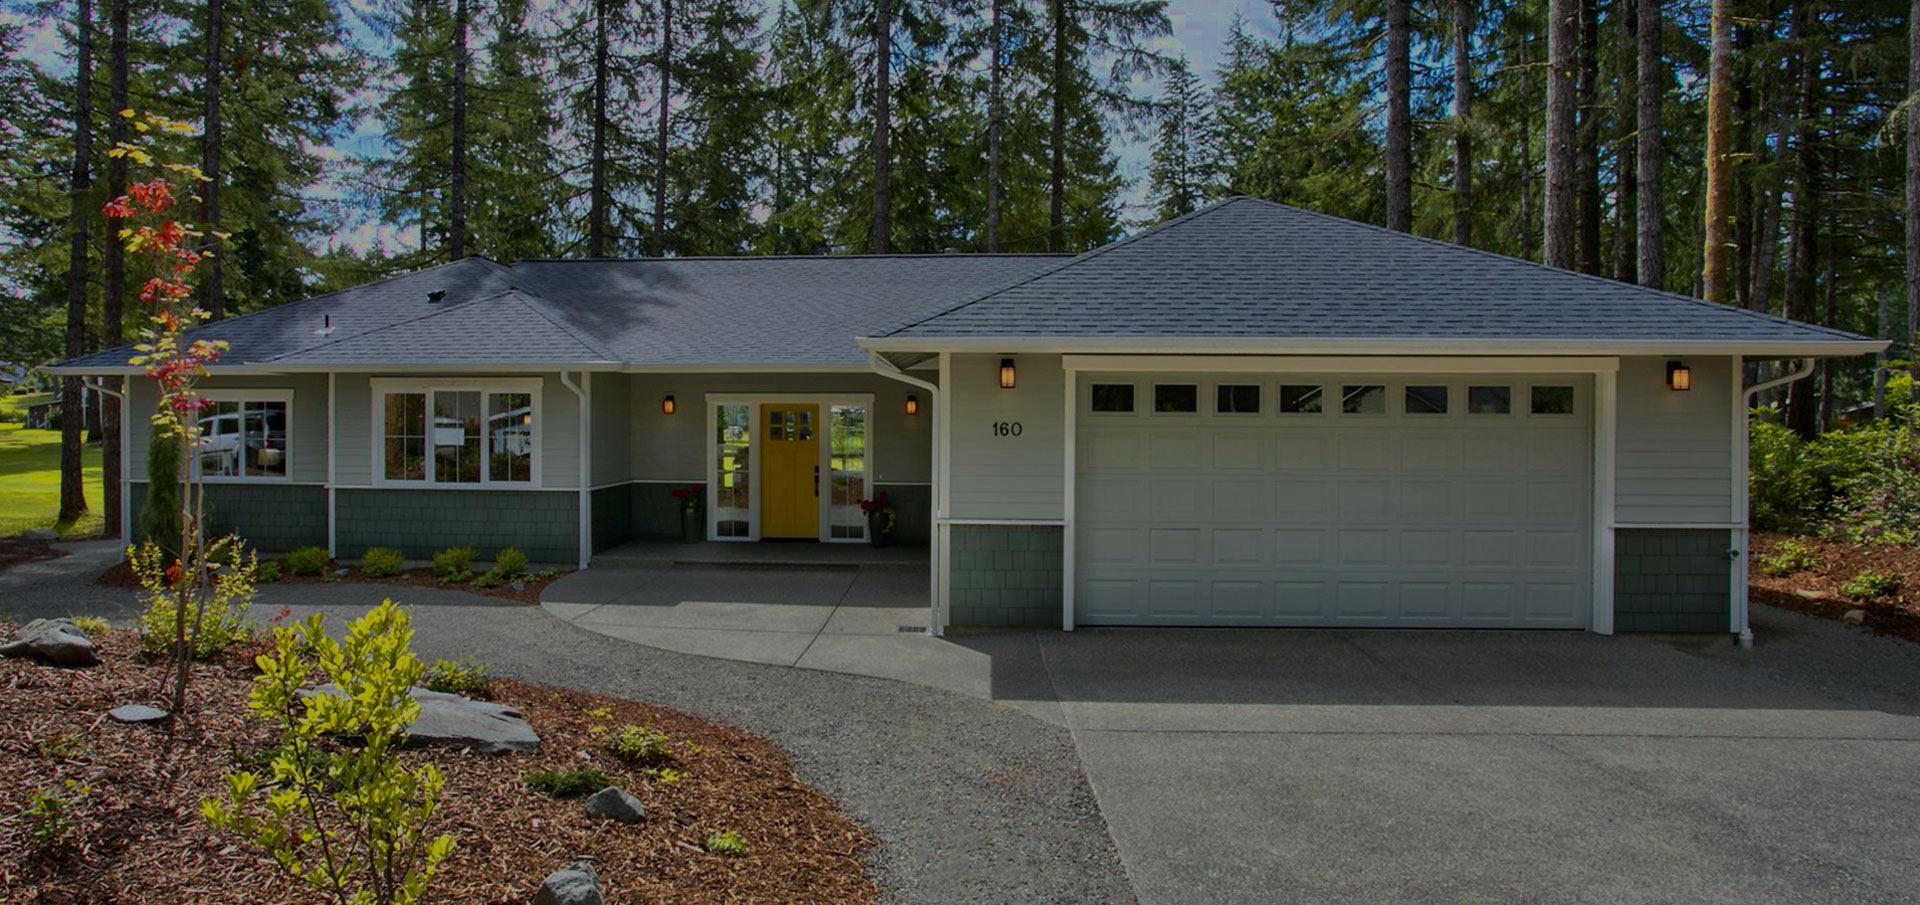 Virtual home tours hadlock alderbrook properties for Alderbrook homes